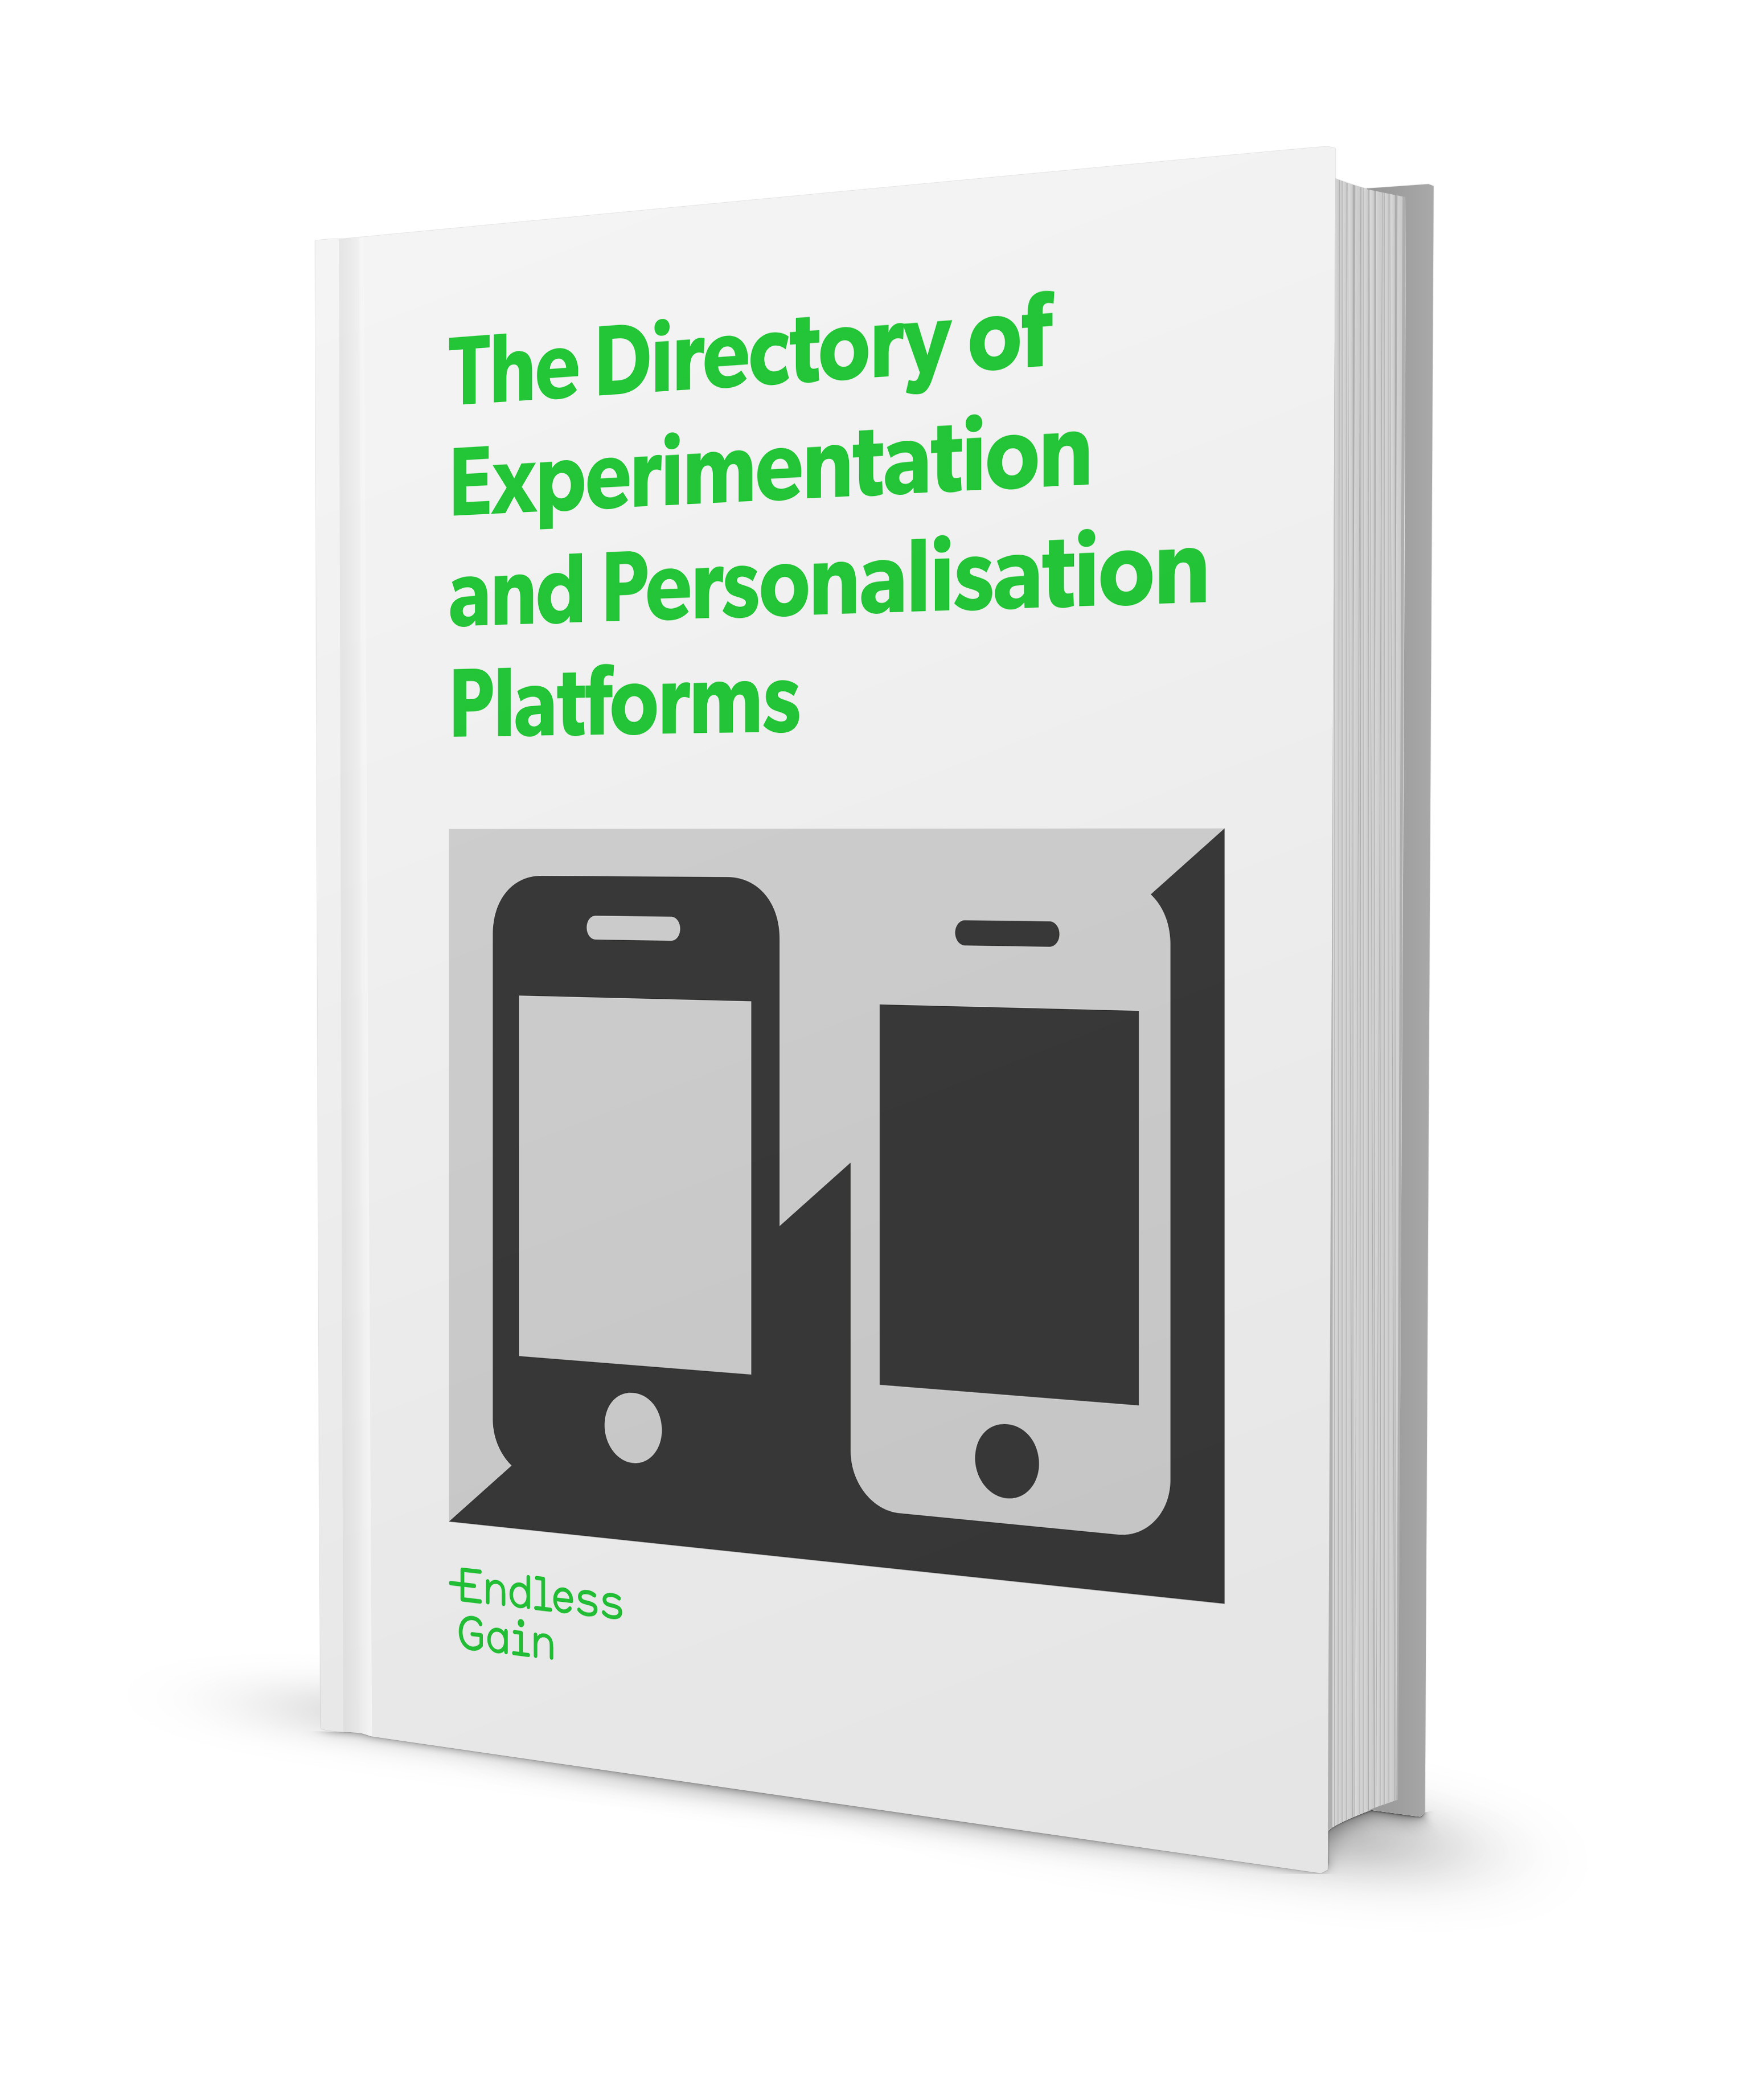 The Directory of Experimentation and Personalisation Platforms cover